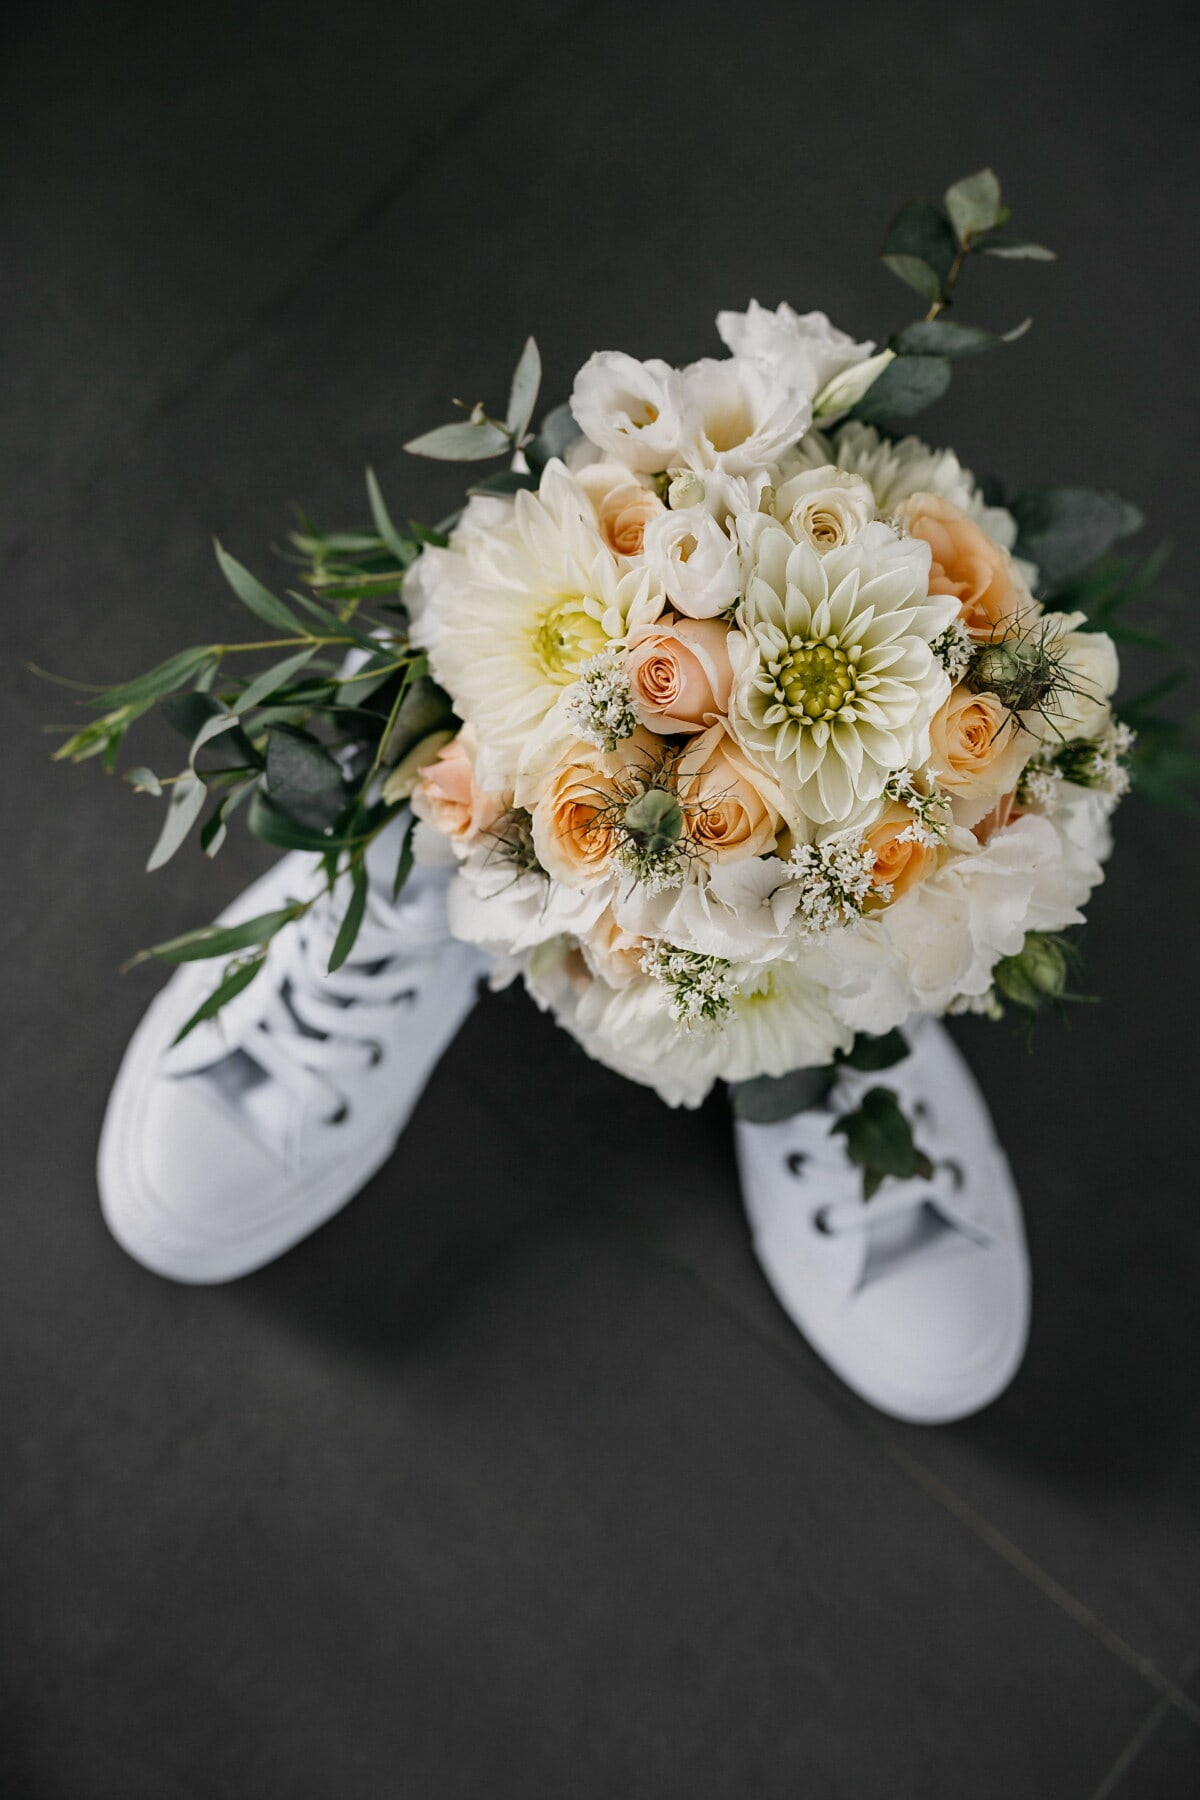 bouquet, footwear, white, sneakers, gift, romance, decoration, rose, flower, love